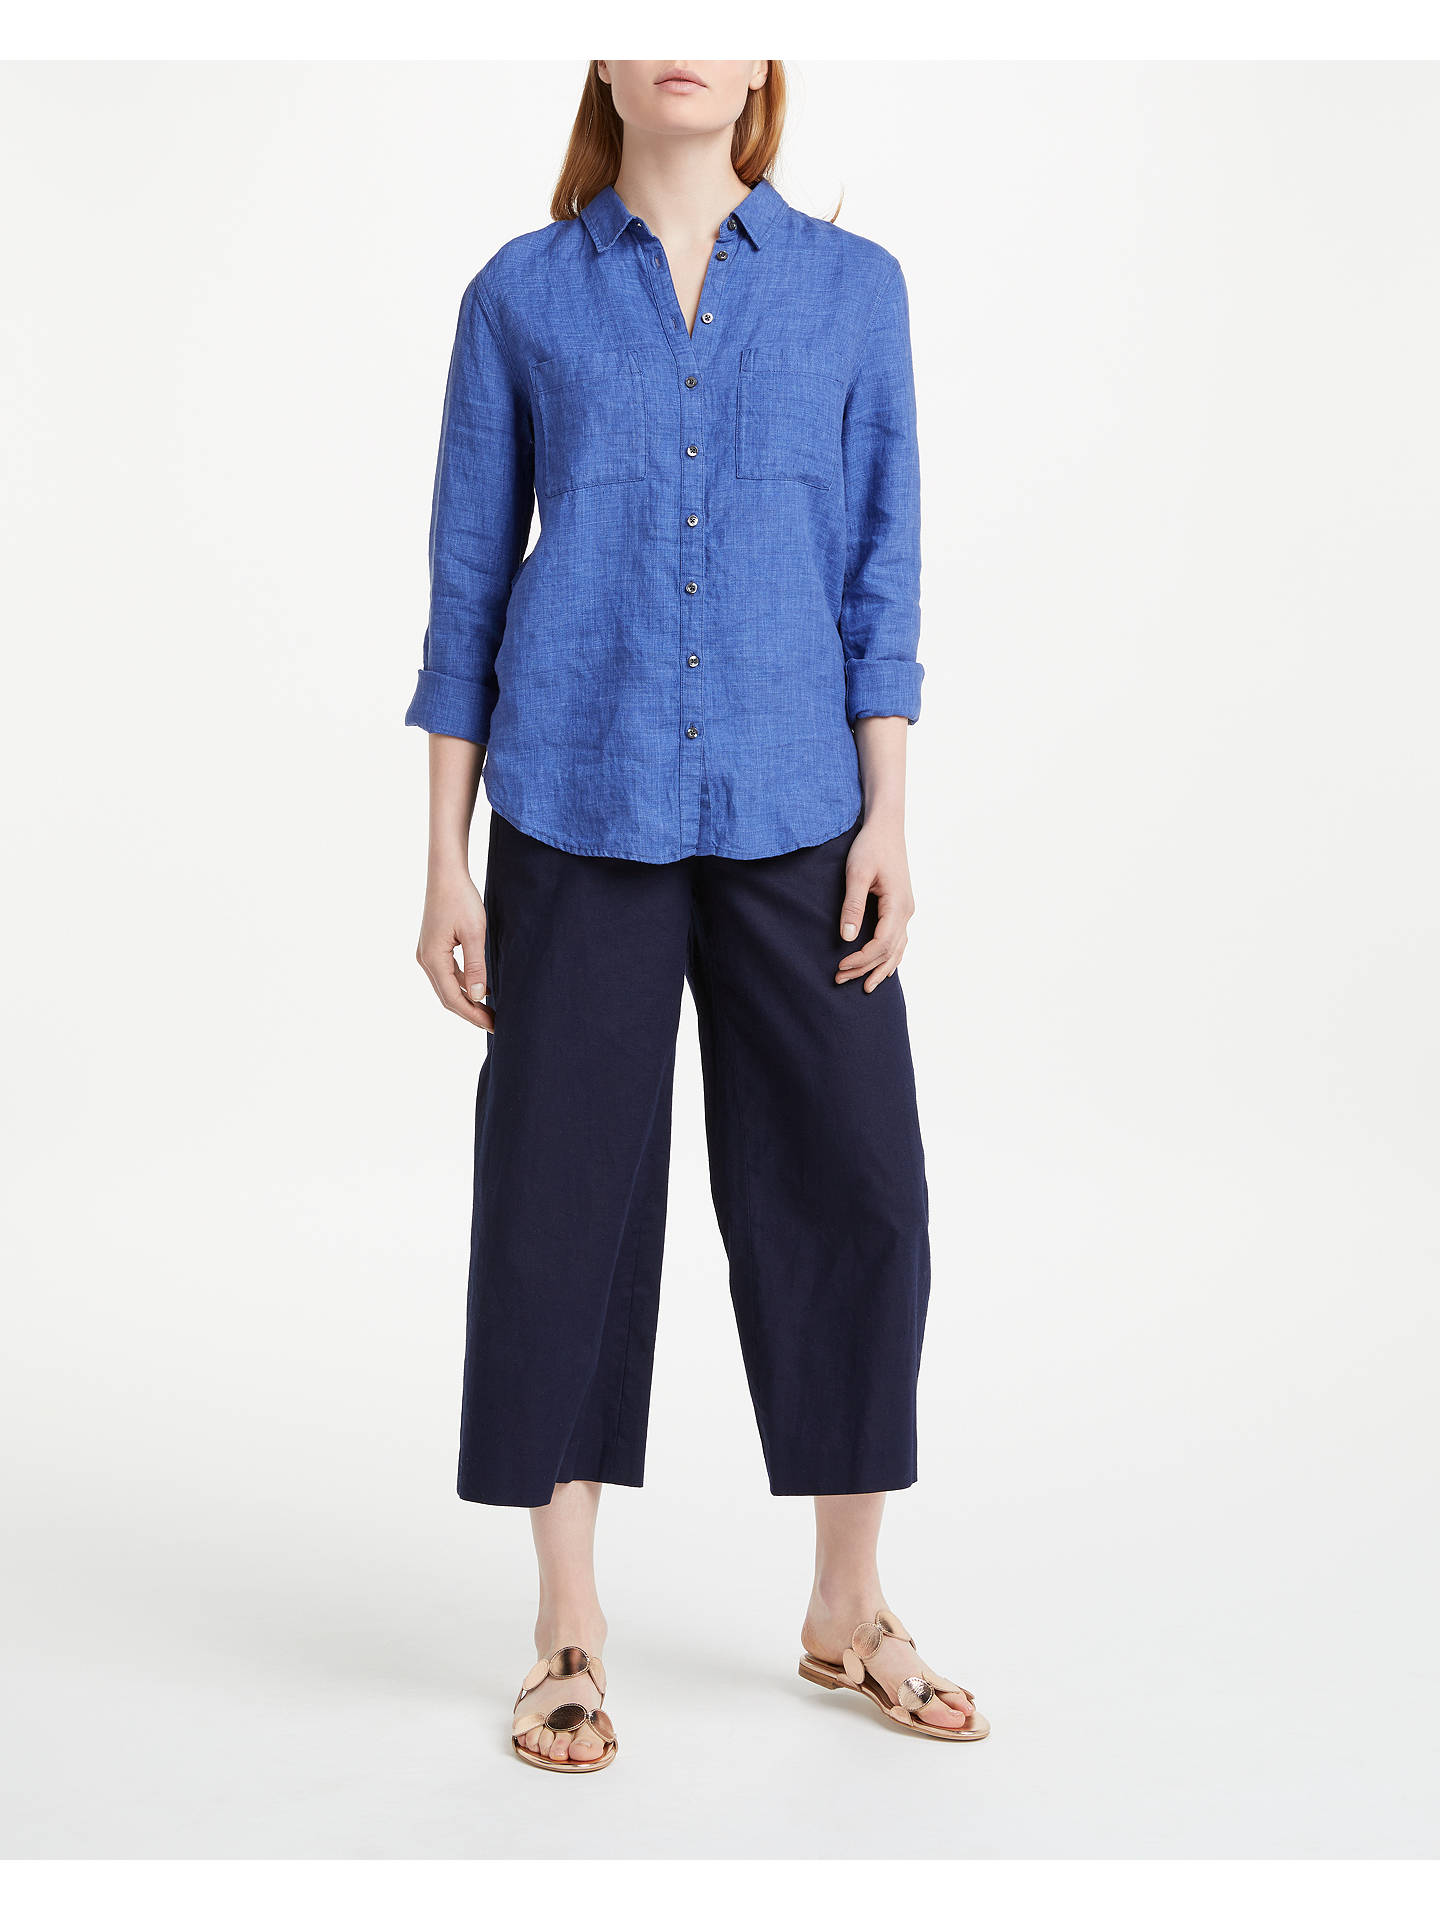 later discount buying now Boden Linen Shirt   Delave at John Lewis & Partners